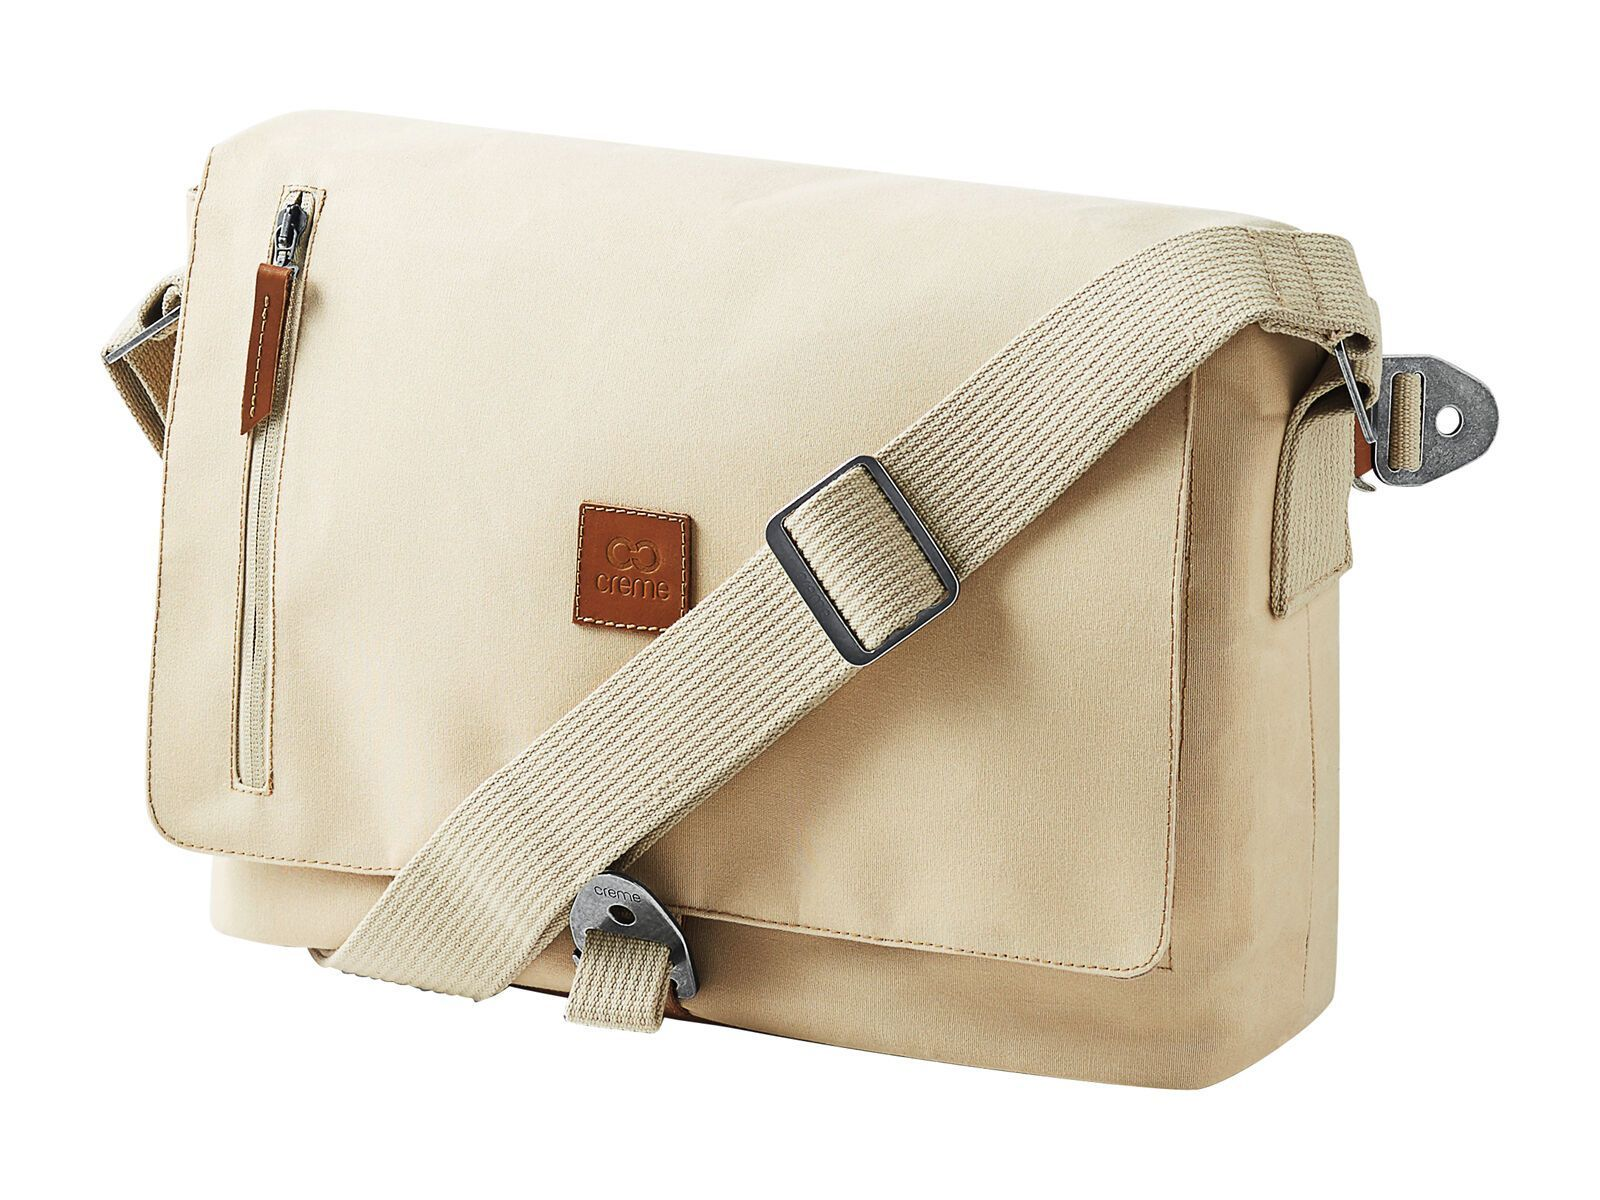 Creme Cycles Messenger Bag, creme beige CR-BAG-0005-nos-620-creme-beige